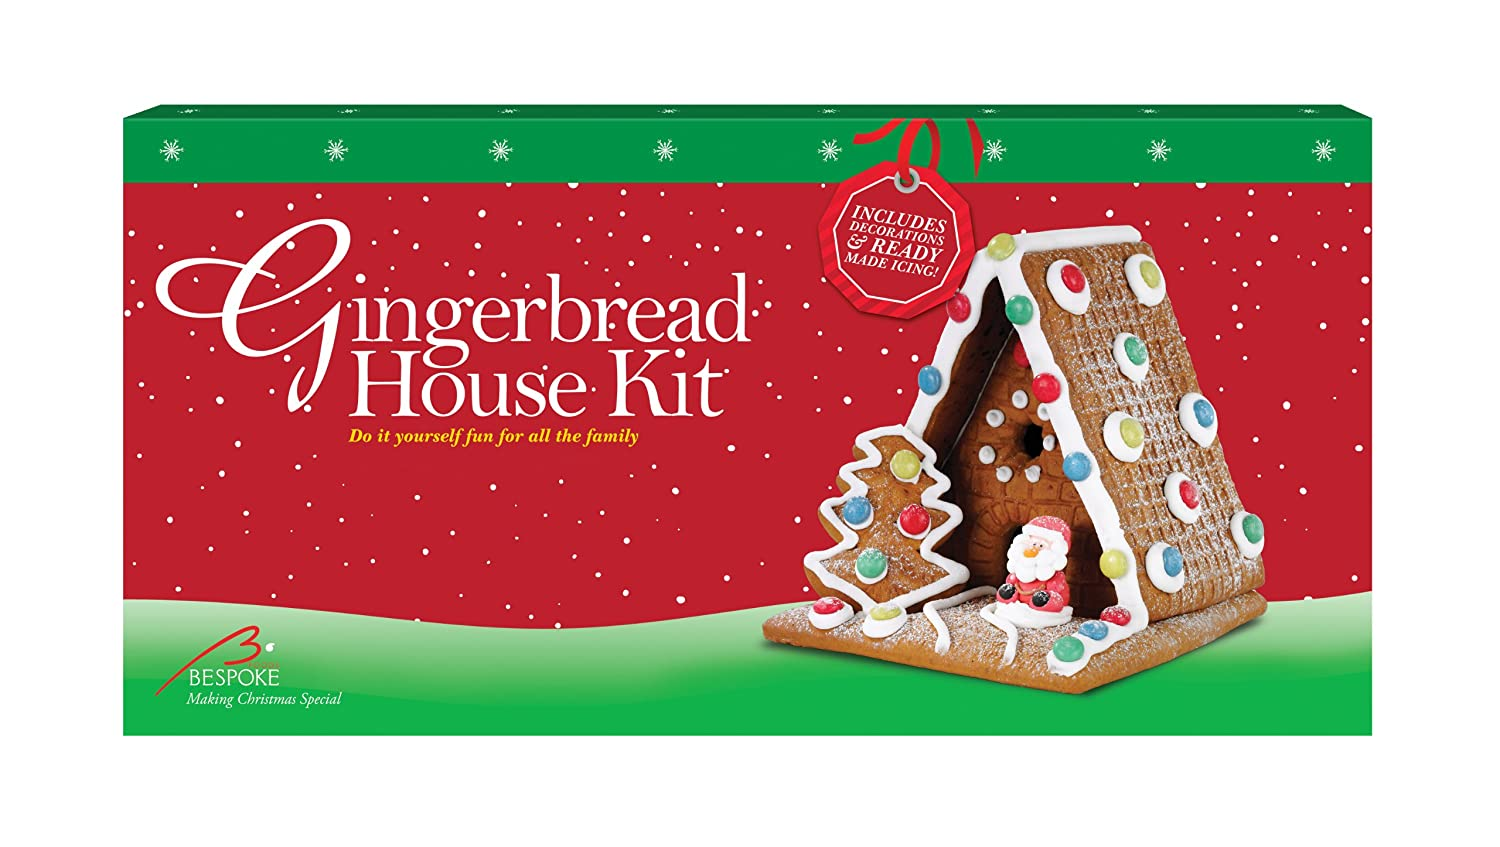 Diy gingerbread house kit with sugar figures sweets and ready made diy gingerbread house kit with sugar figures sweets and ready made icing 650 g amazon grocery solutioingenieria Image collections